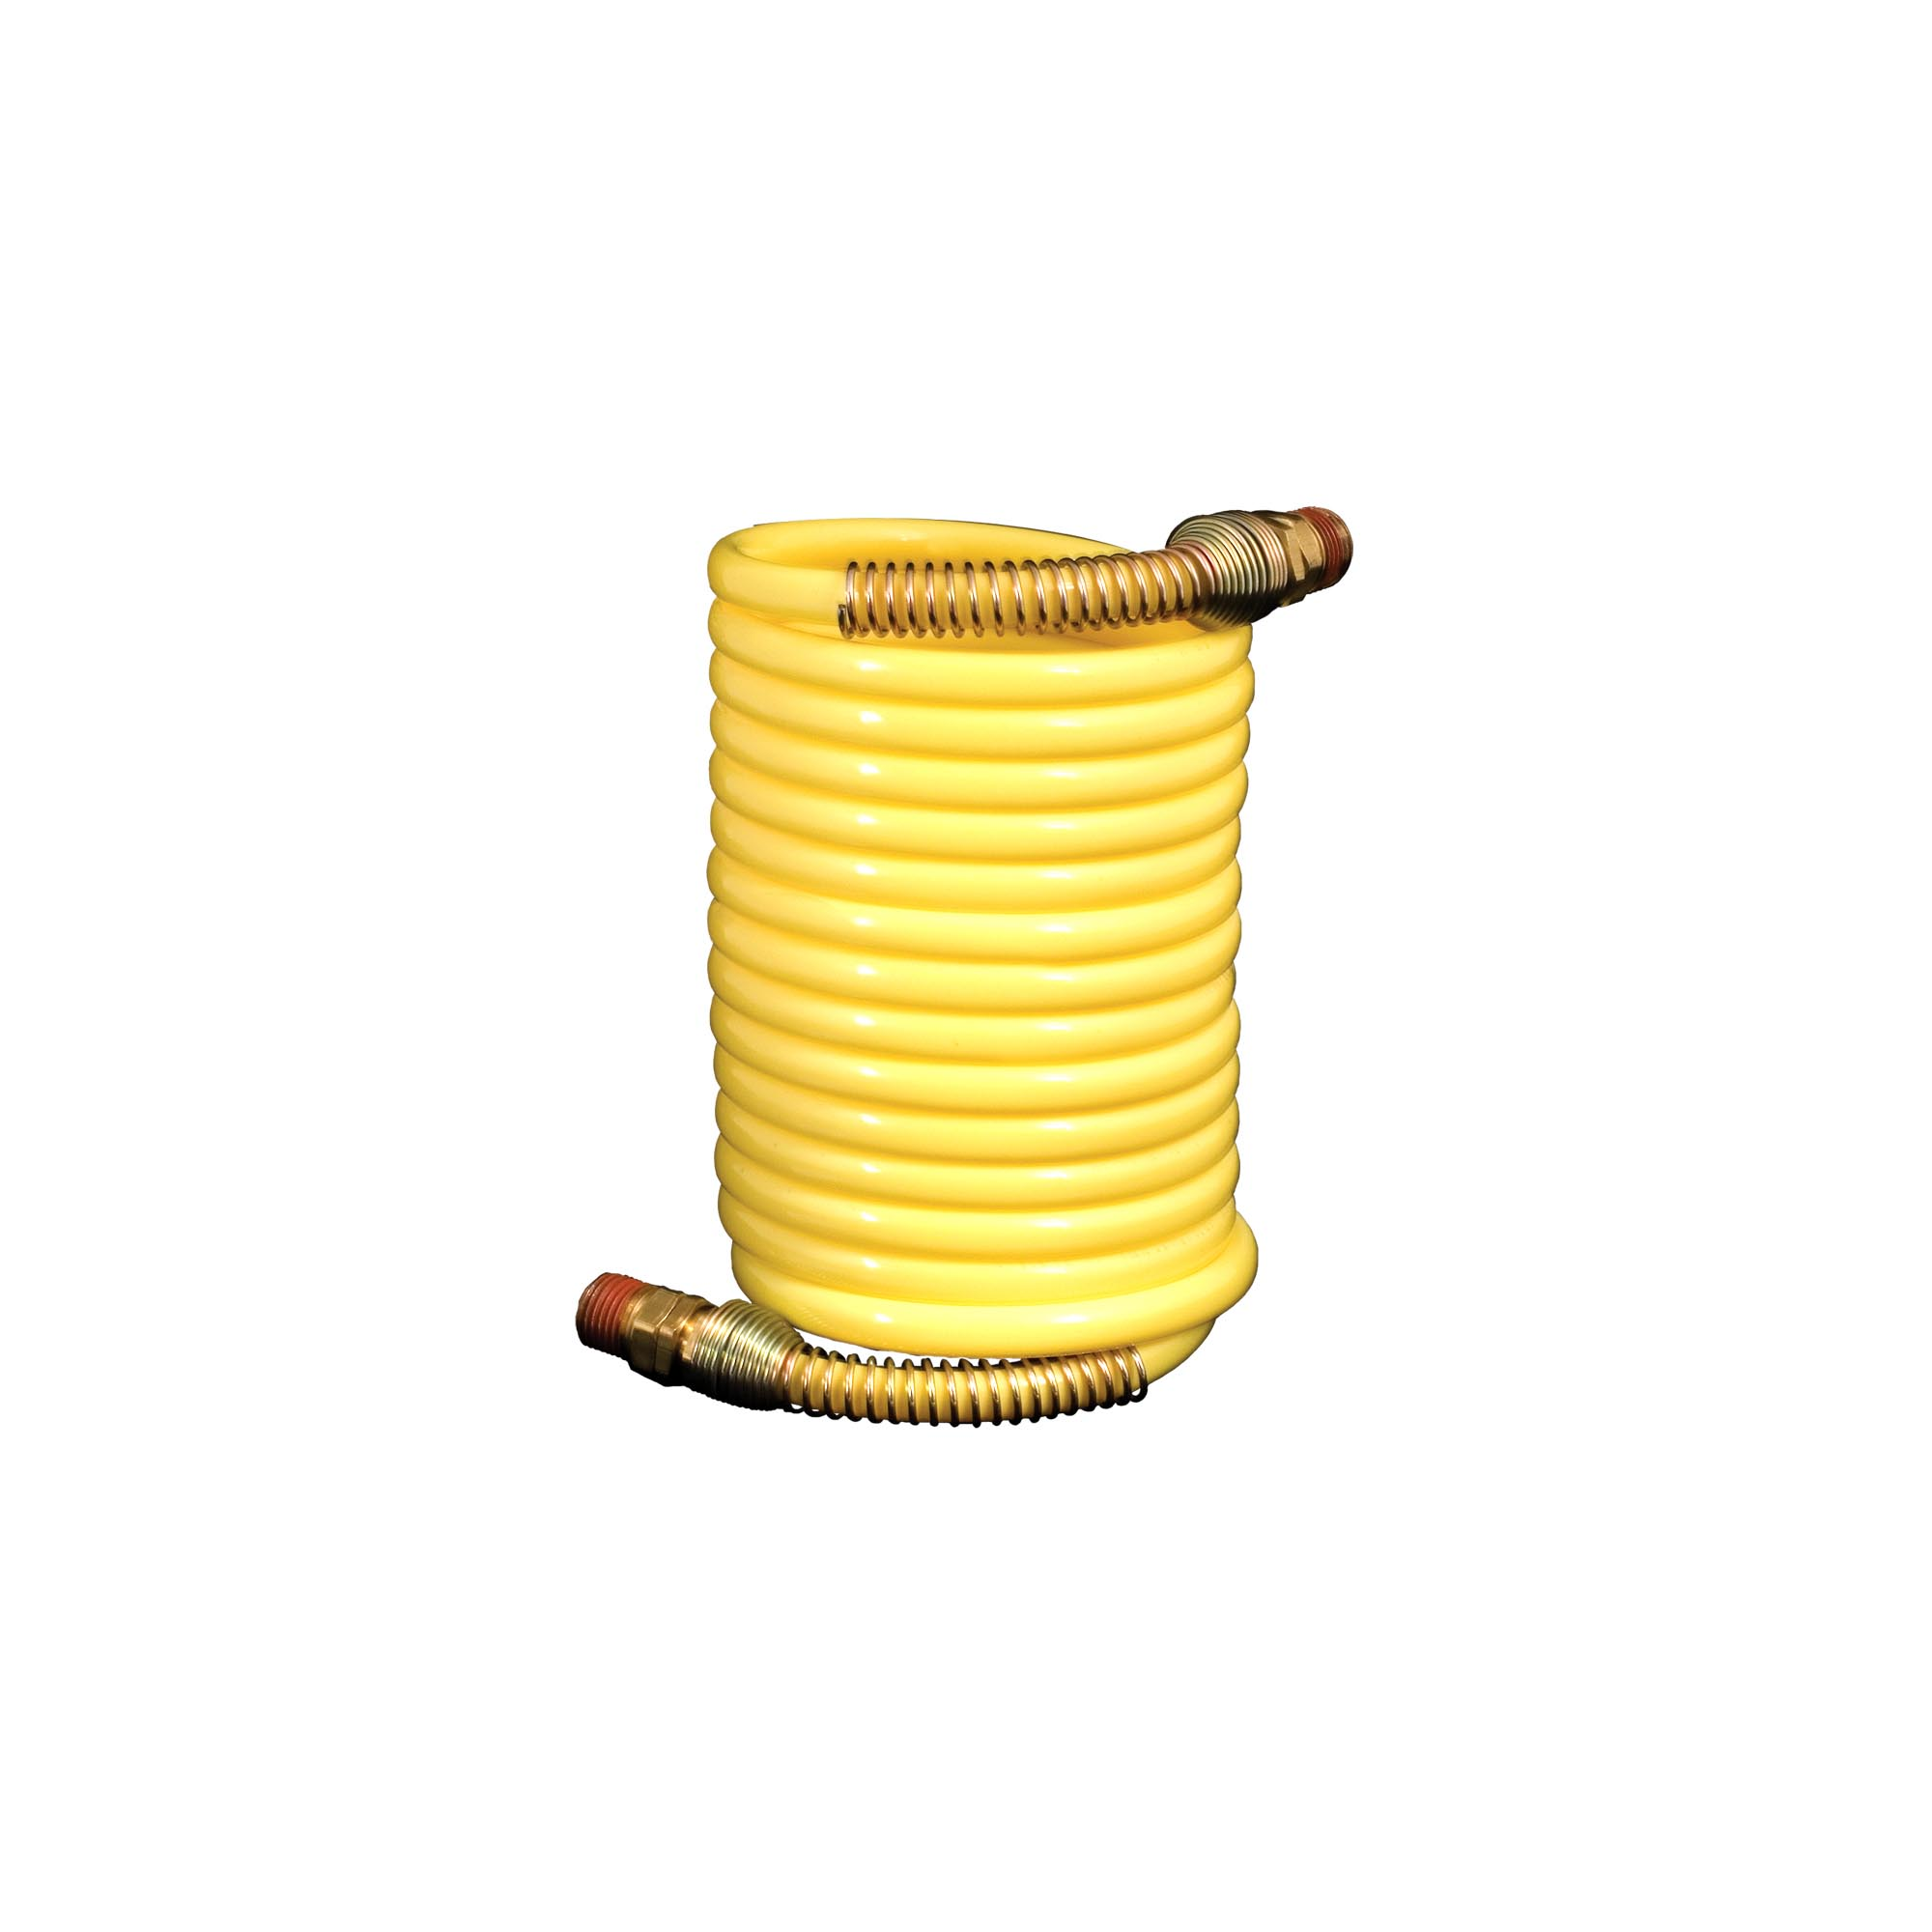 Model 900106 Coiled Hose with Swivel